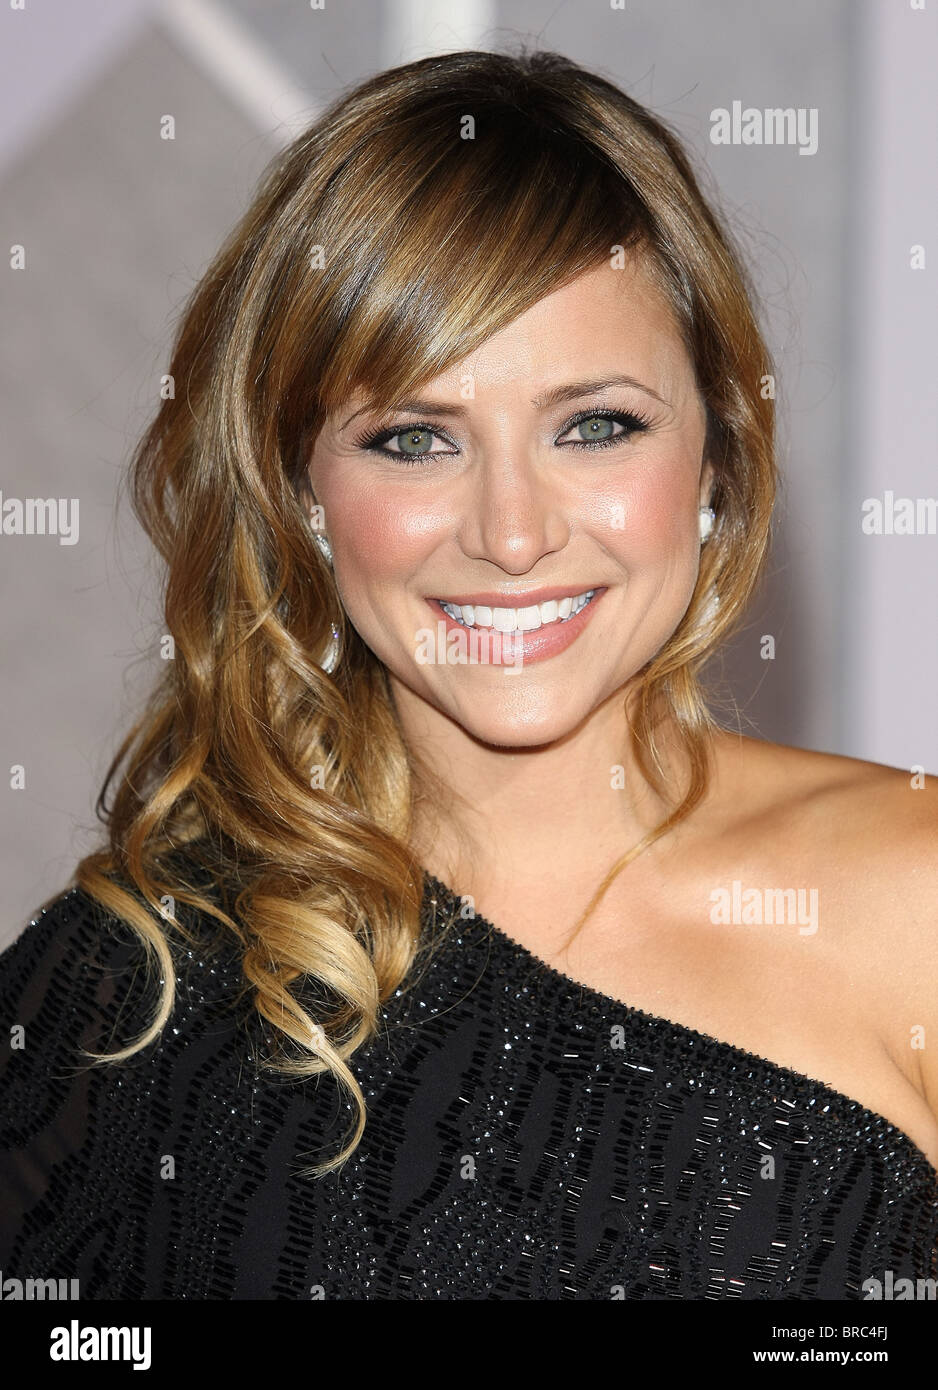 Watch Christine Lakin video